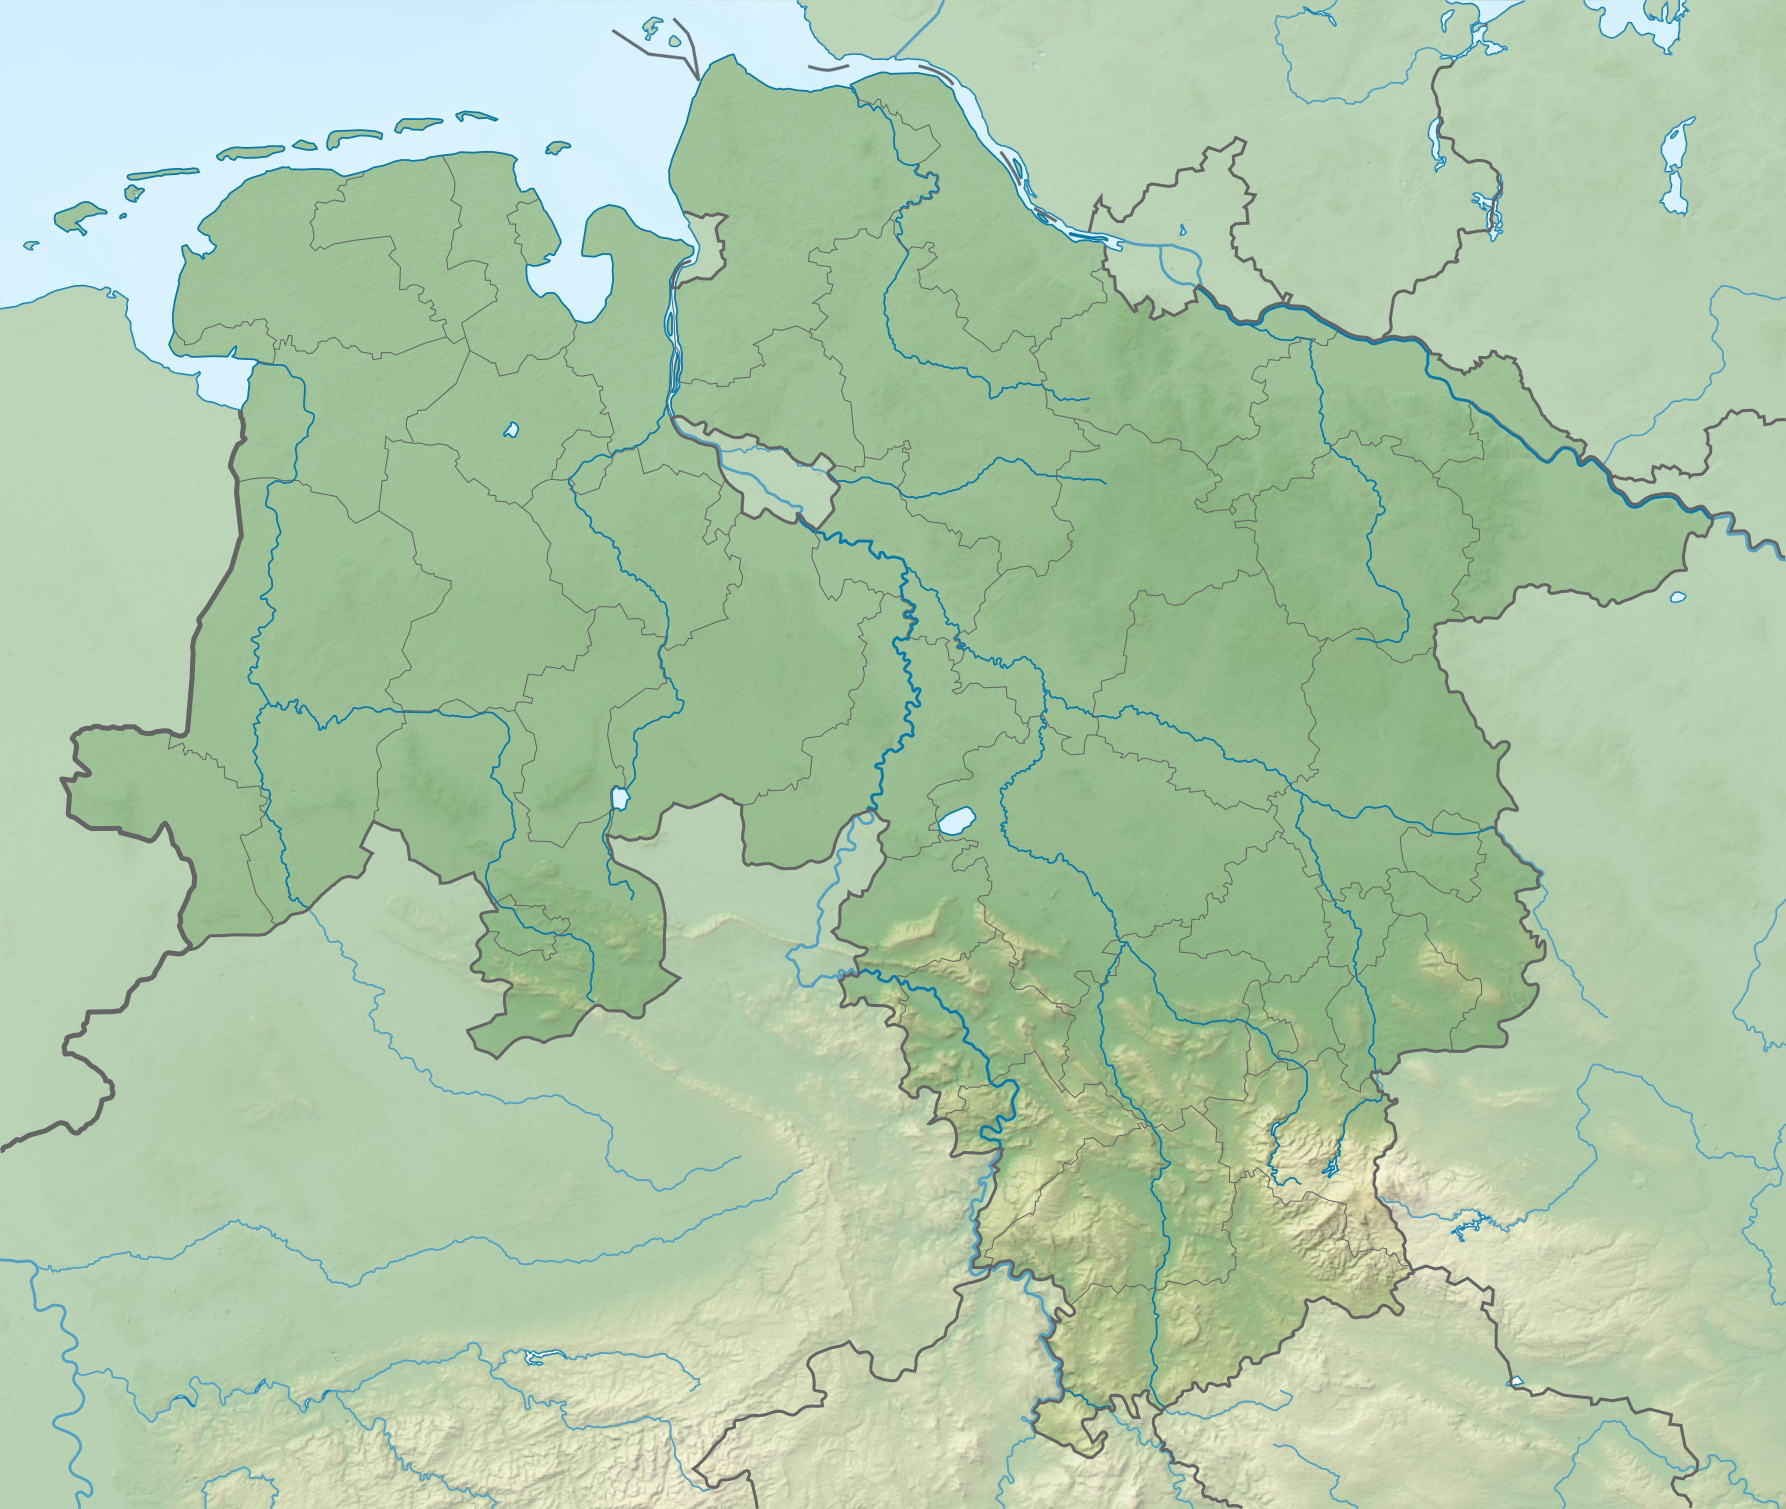 Physische Karte Niedersachsen.Datei Lower Saxony Relief Location Map Jpg Wikipedia